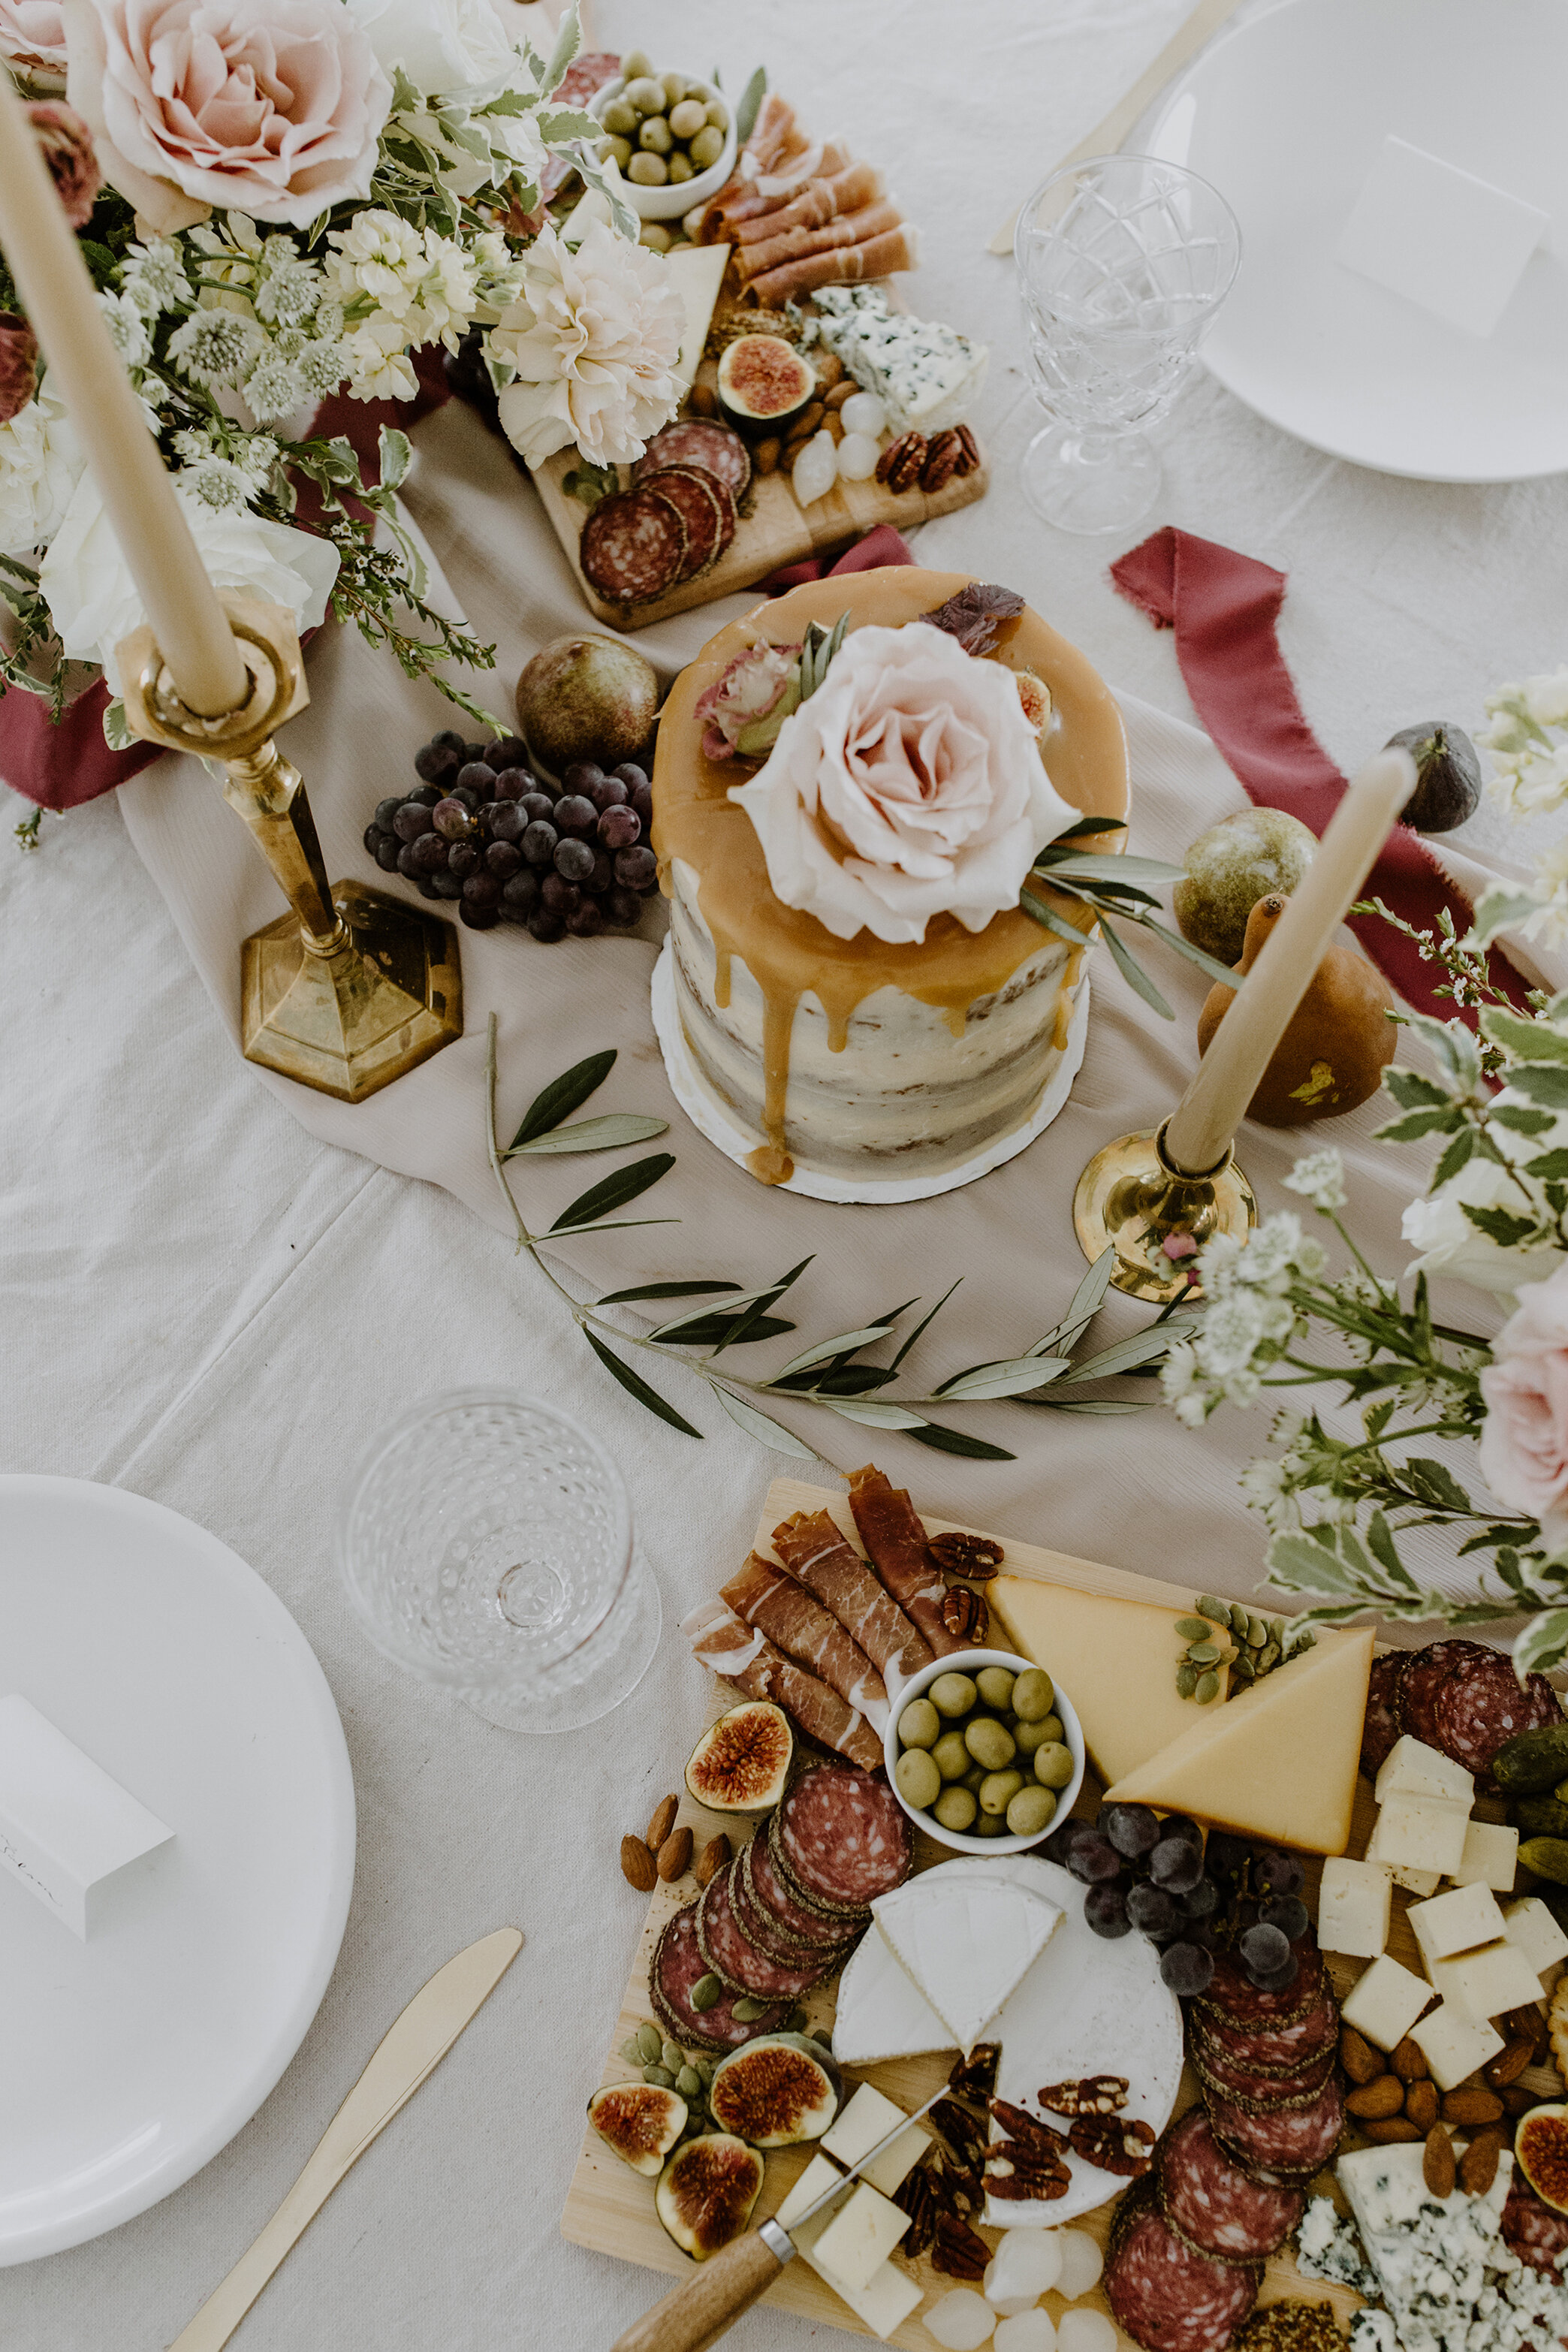 Old-World Romantic Styling Meets Warm Family-Style Gathering // Inspiration Shoot at Spruce Meadows